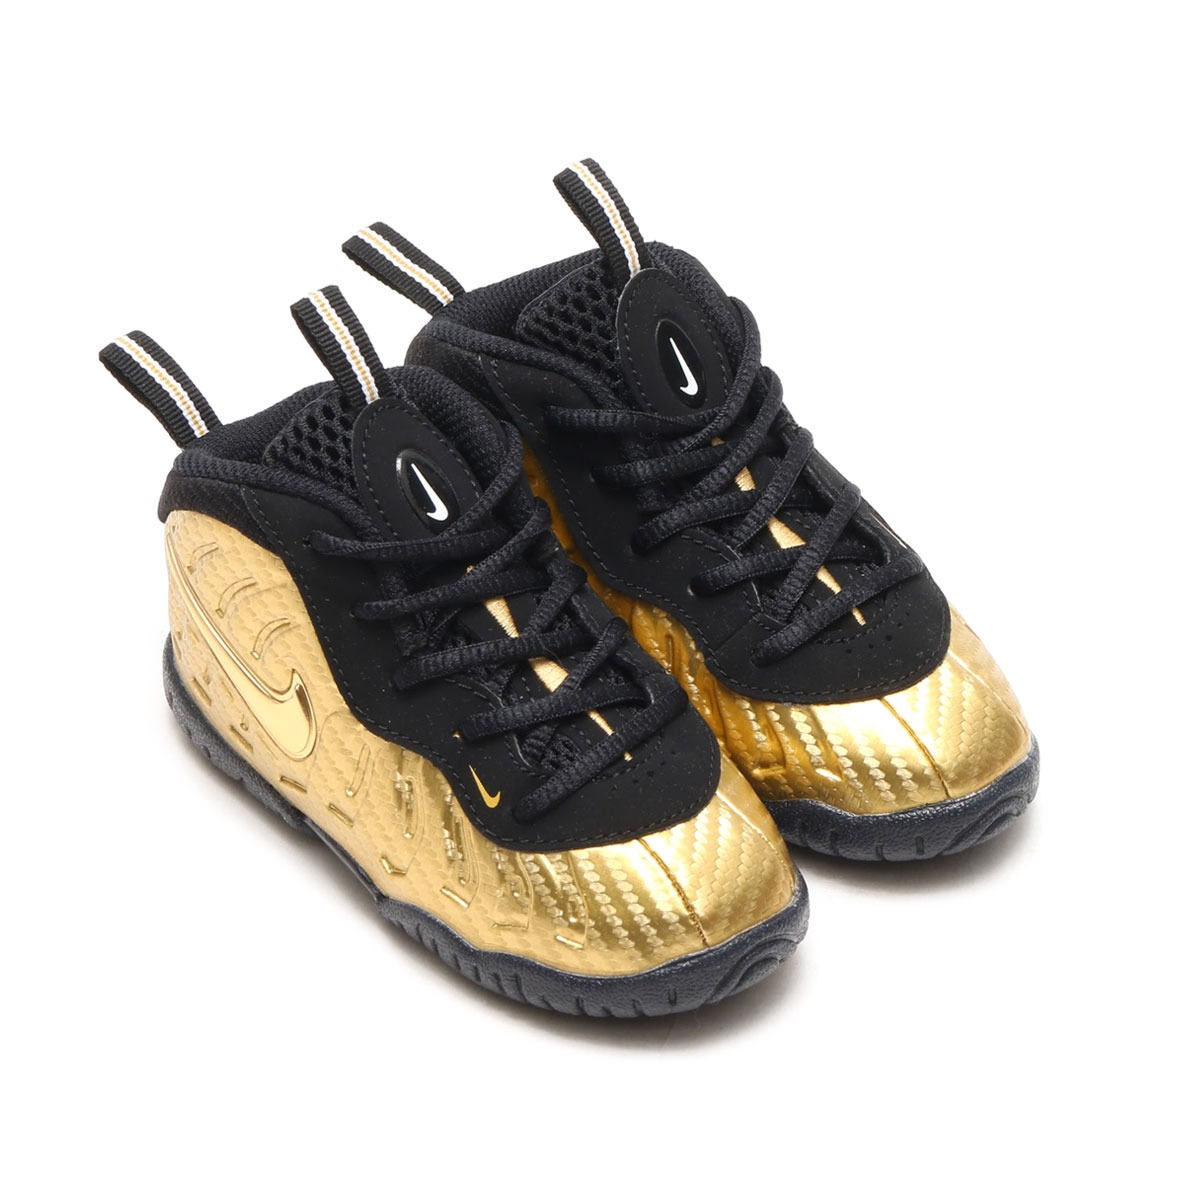 7287062721 ... where to buy nike foamposite gold kids. cargando zoom. 49c31 ea866 uk nike  air ...